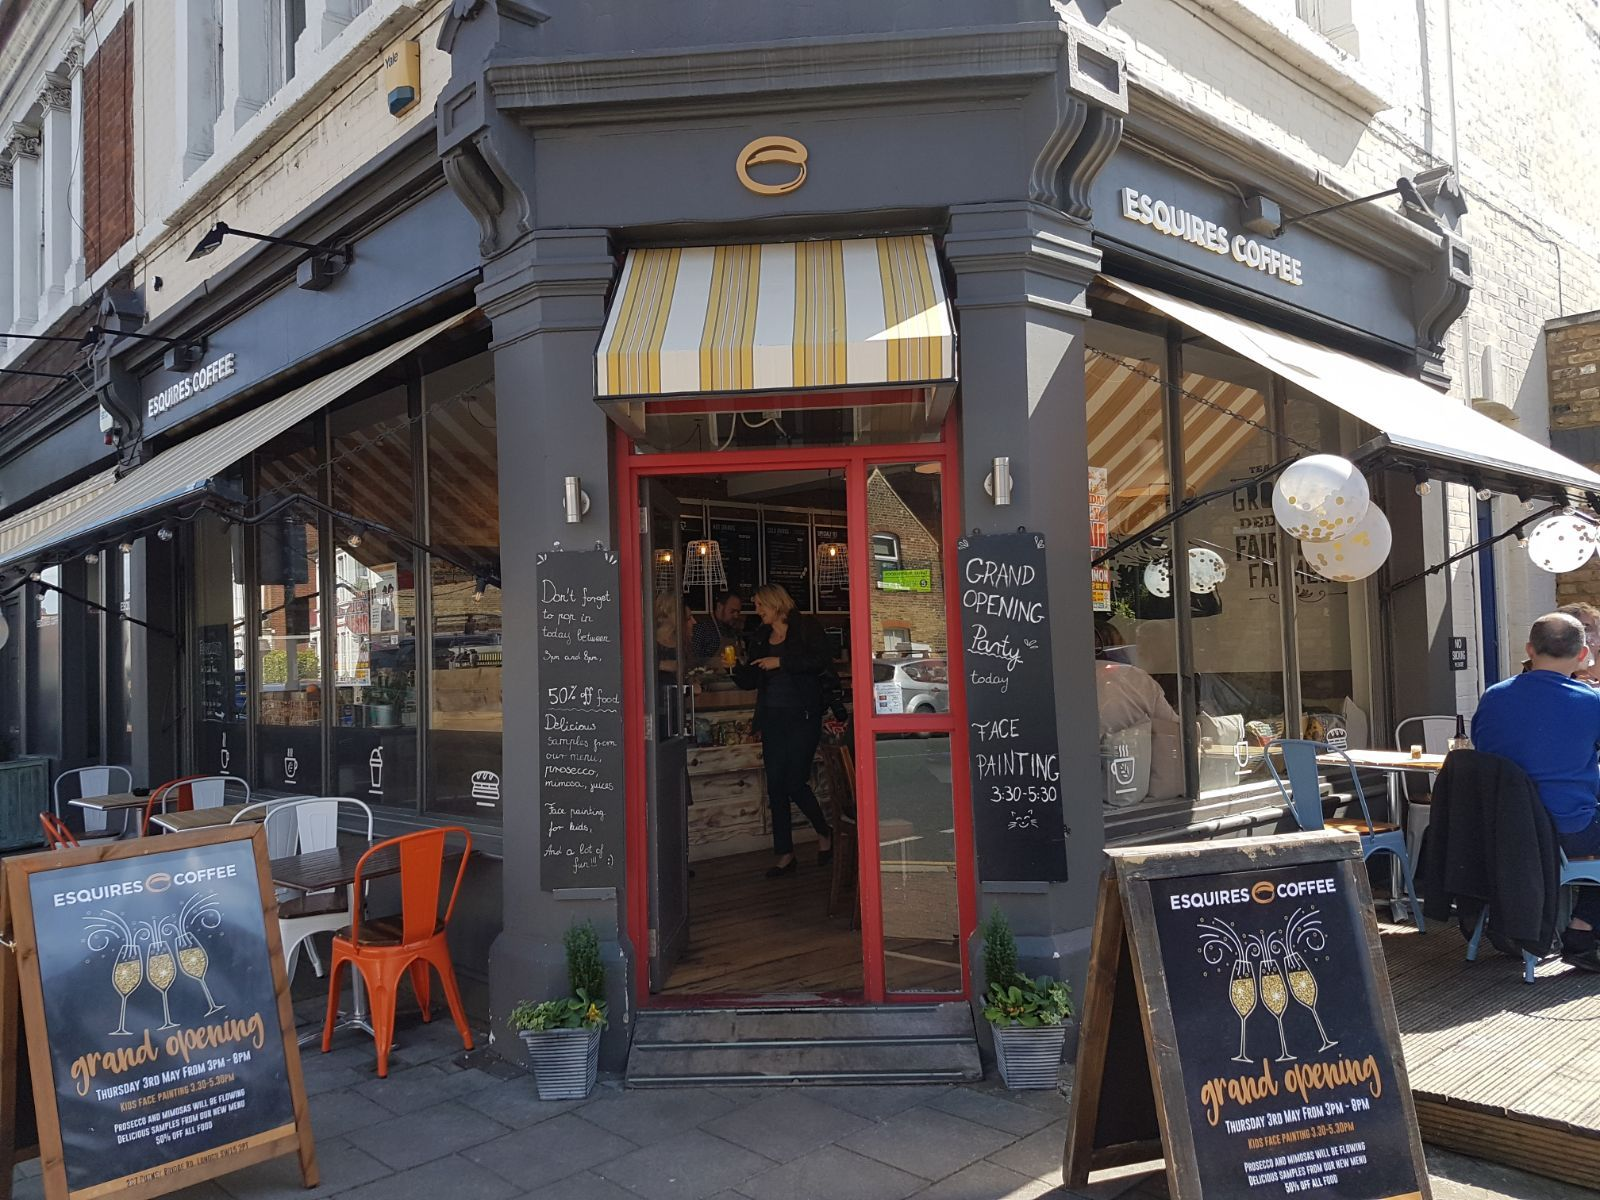 Exterior of Esquires Coffee shop in Putney